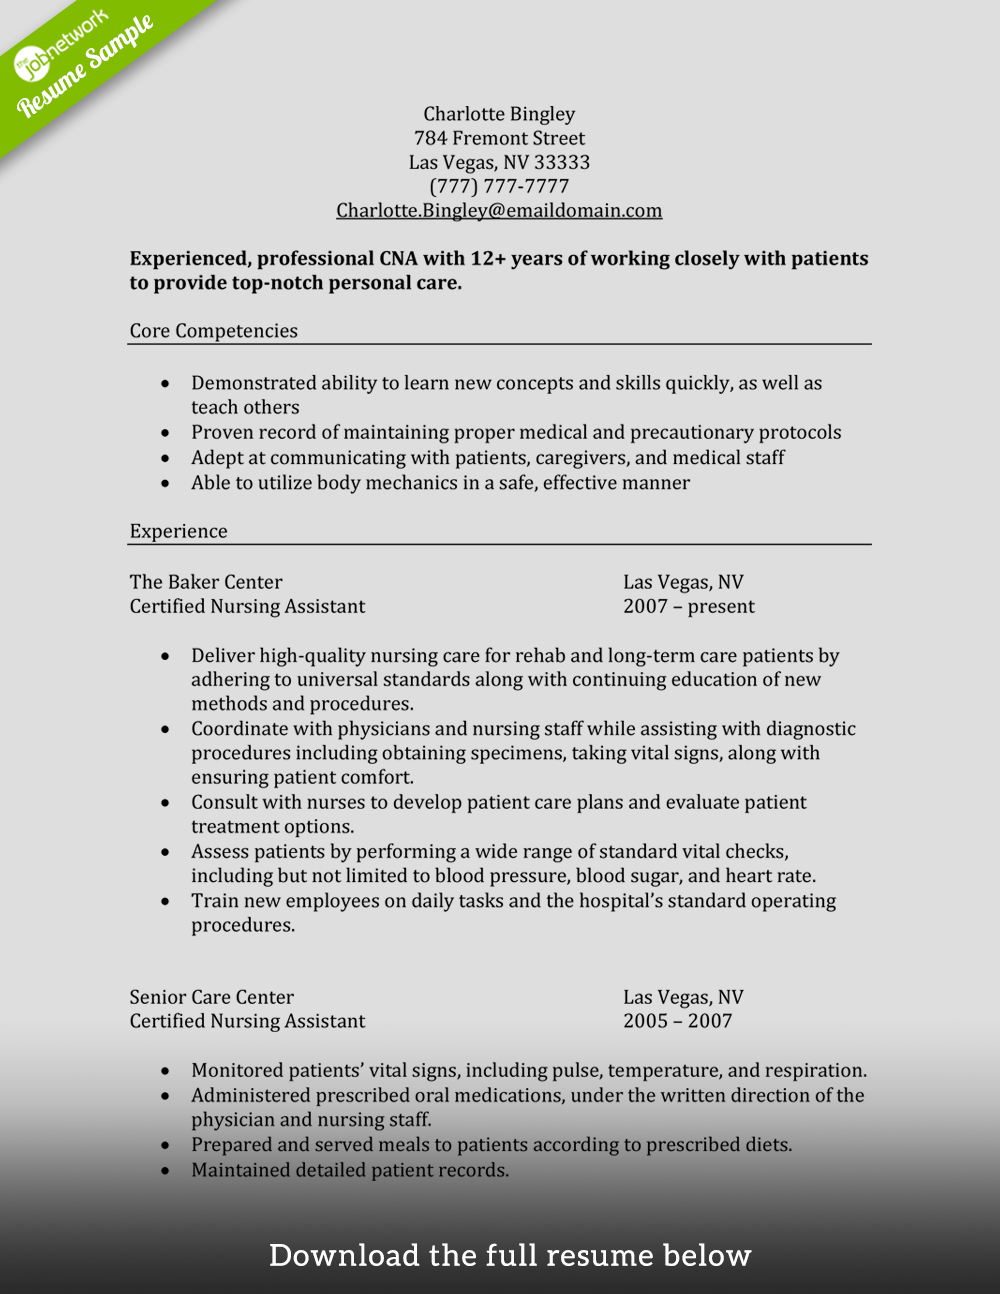 How to write a perfect cna resume examples included cna resume experienced altavistaventures Image collections